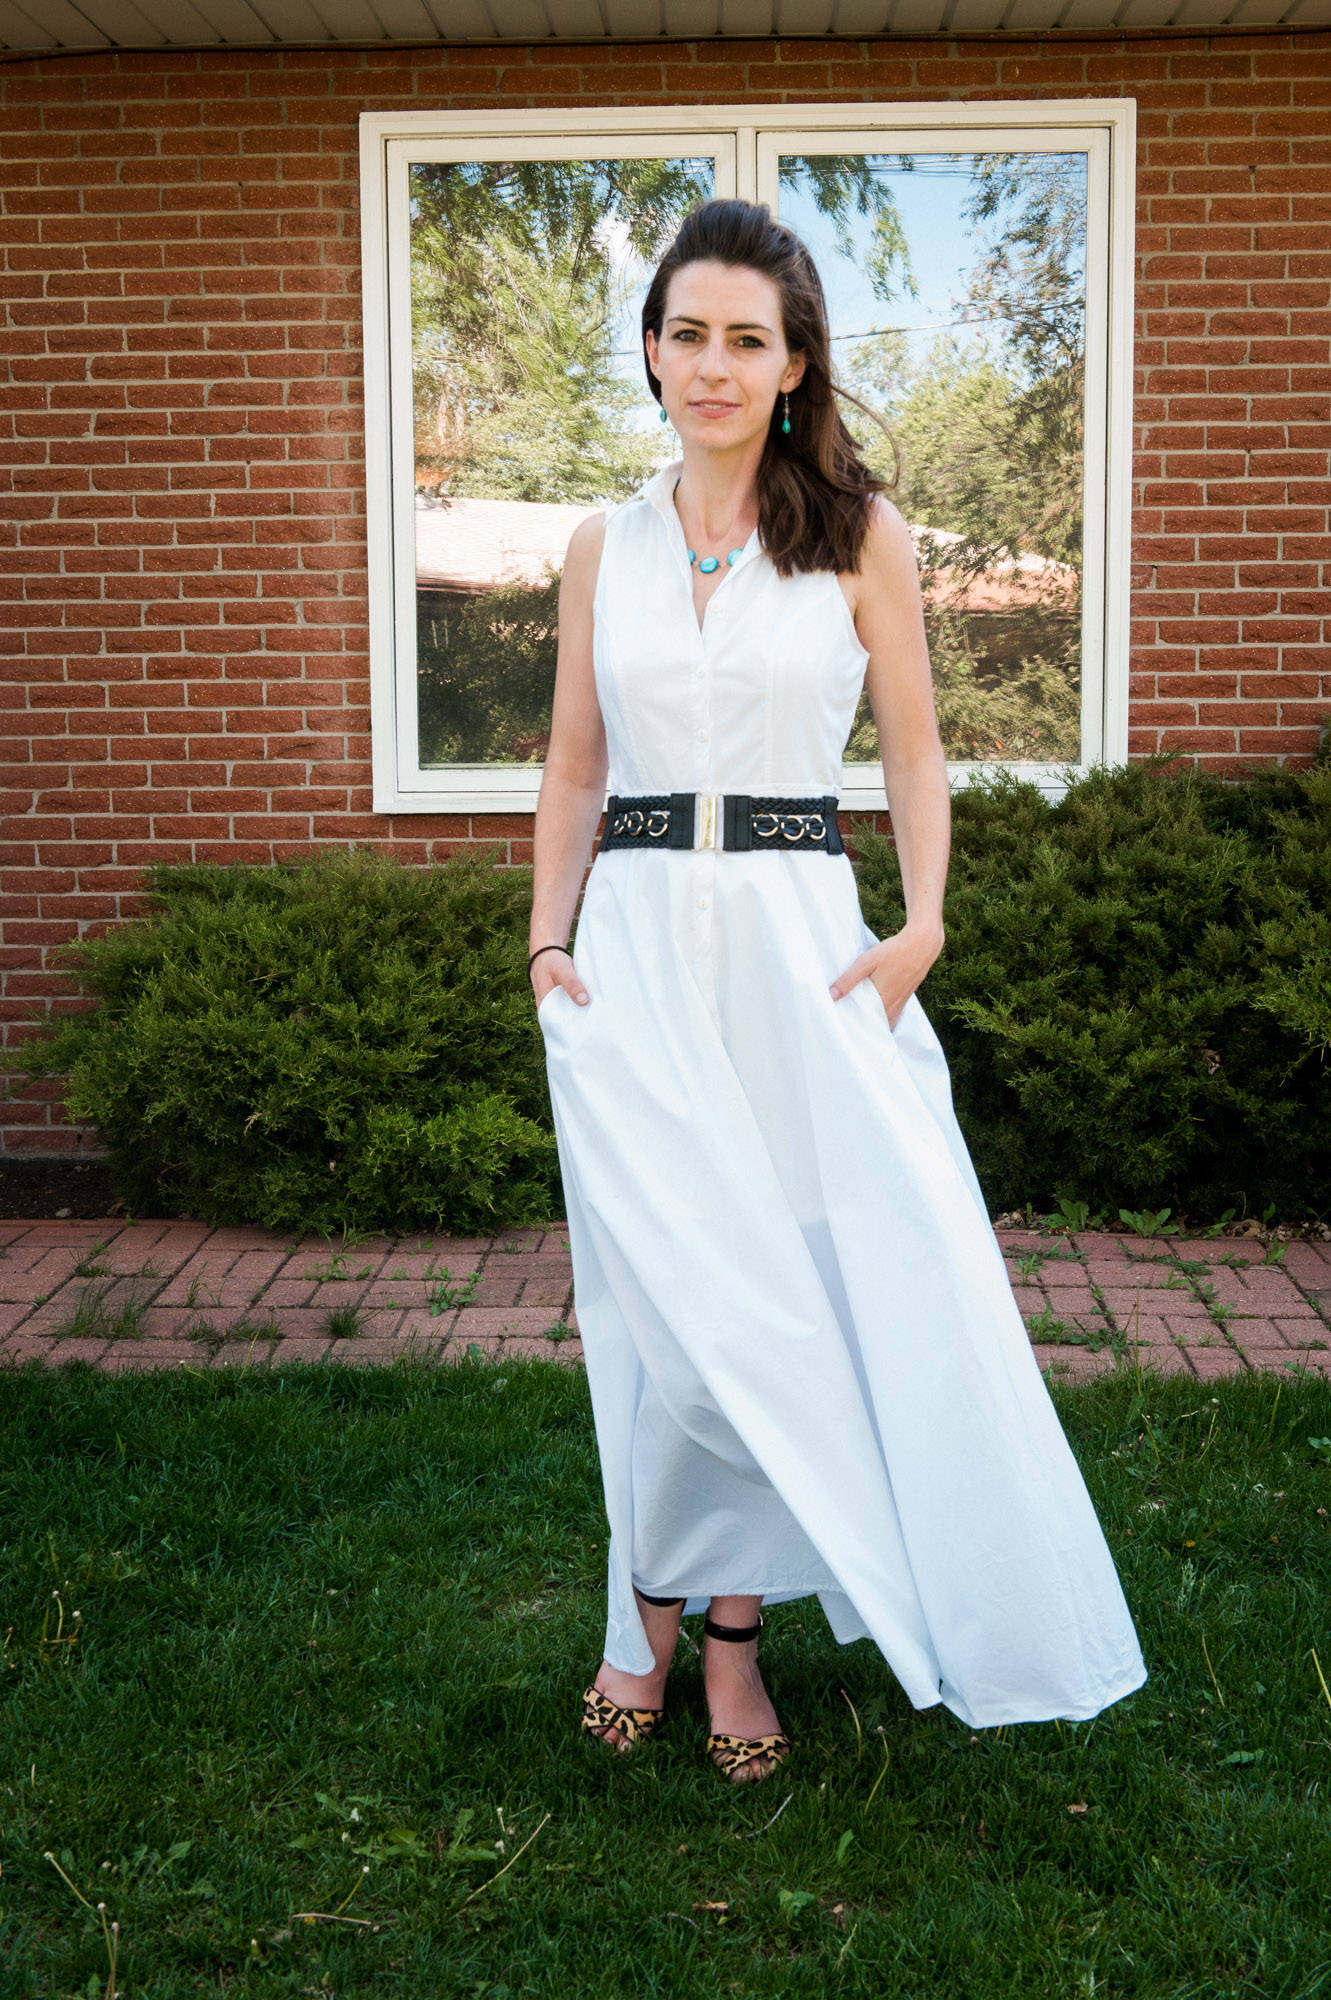 White dress with a statement necklace